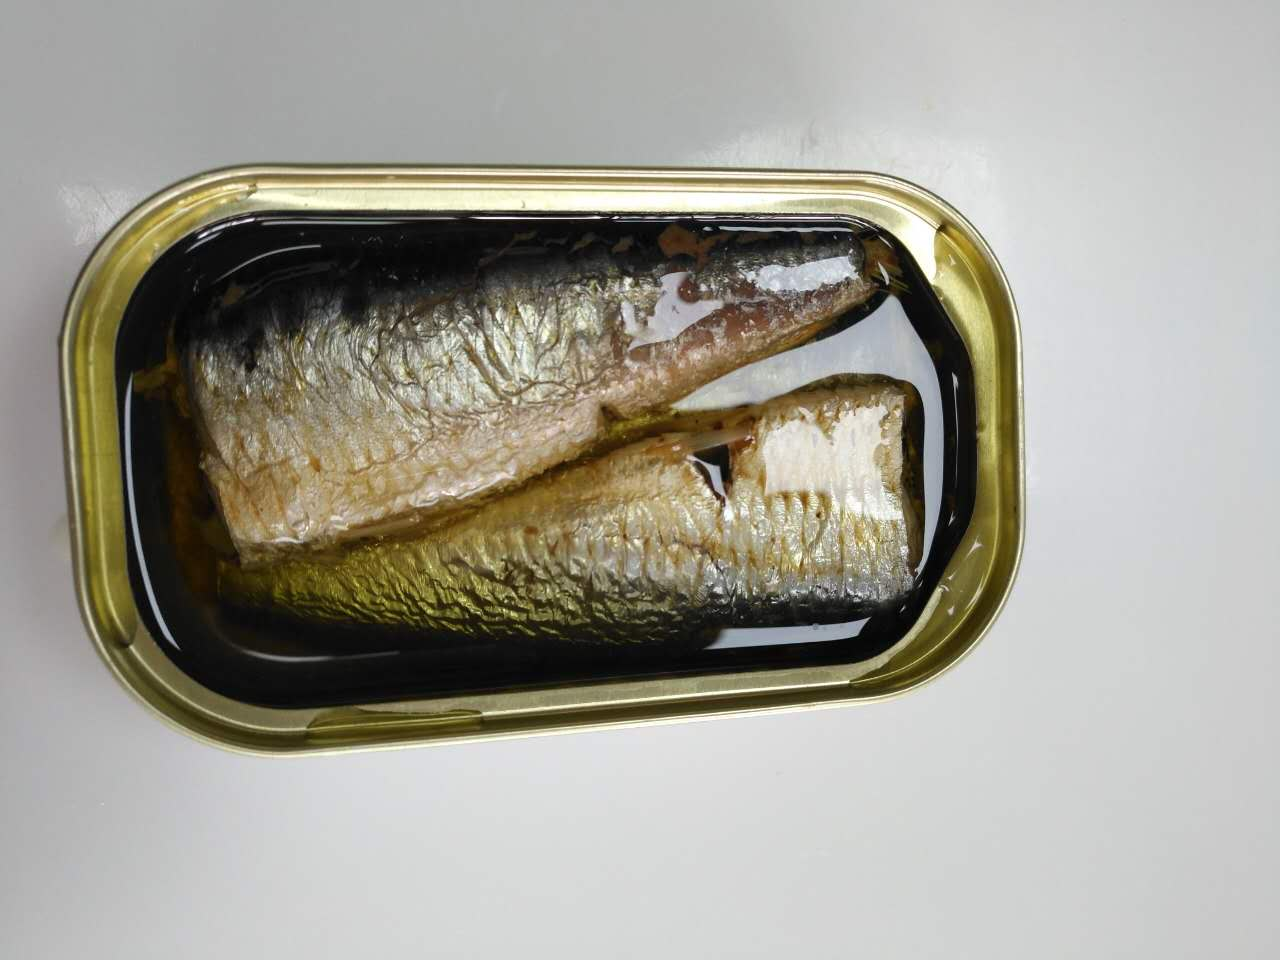 125g canned sardines in vegetable oil